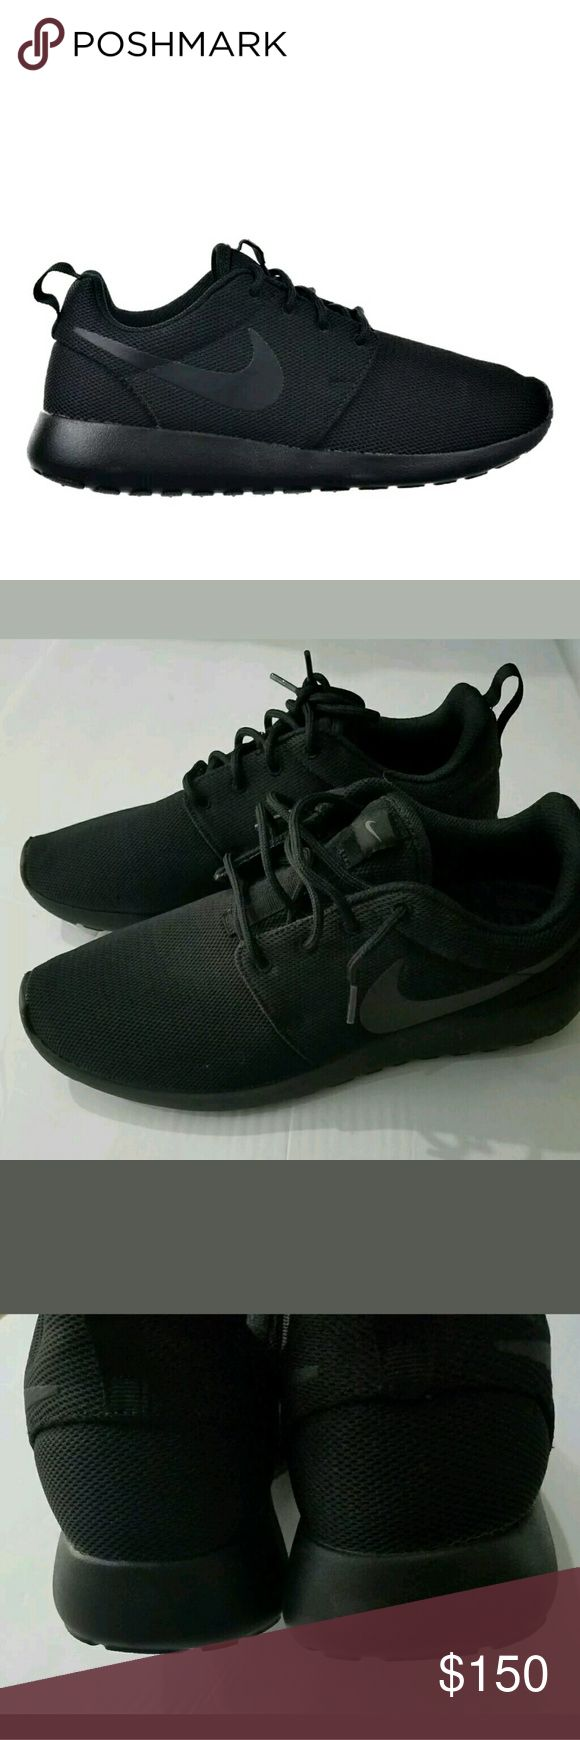 25 best ideas about all black running shoes on